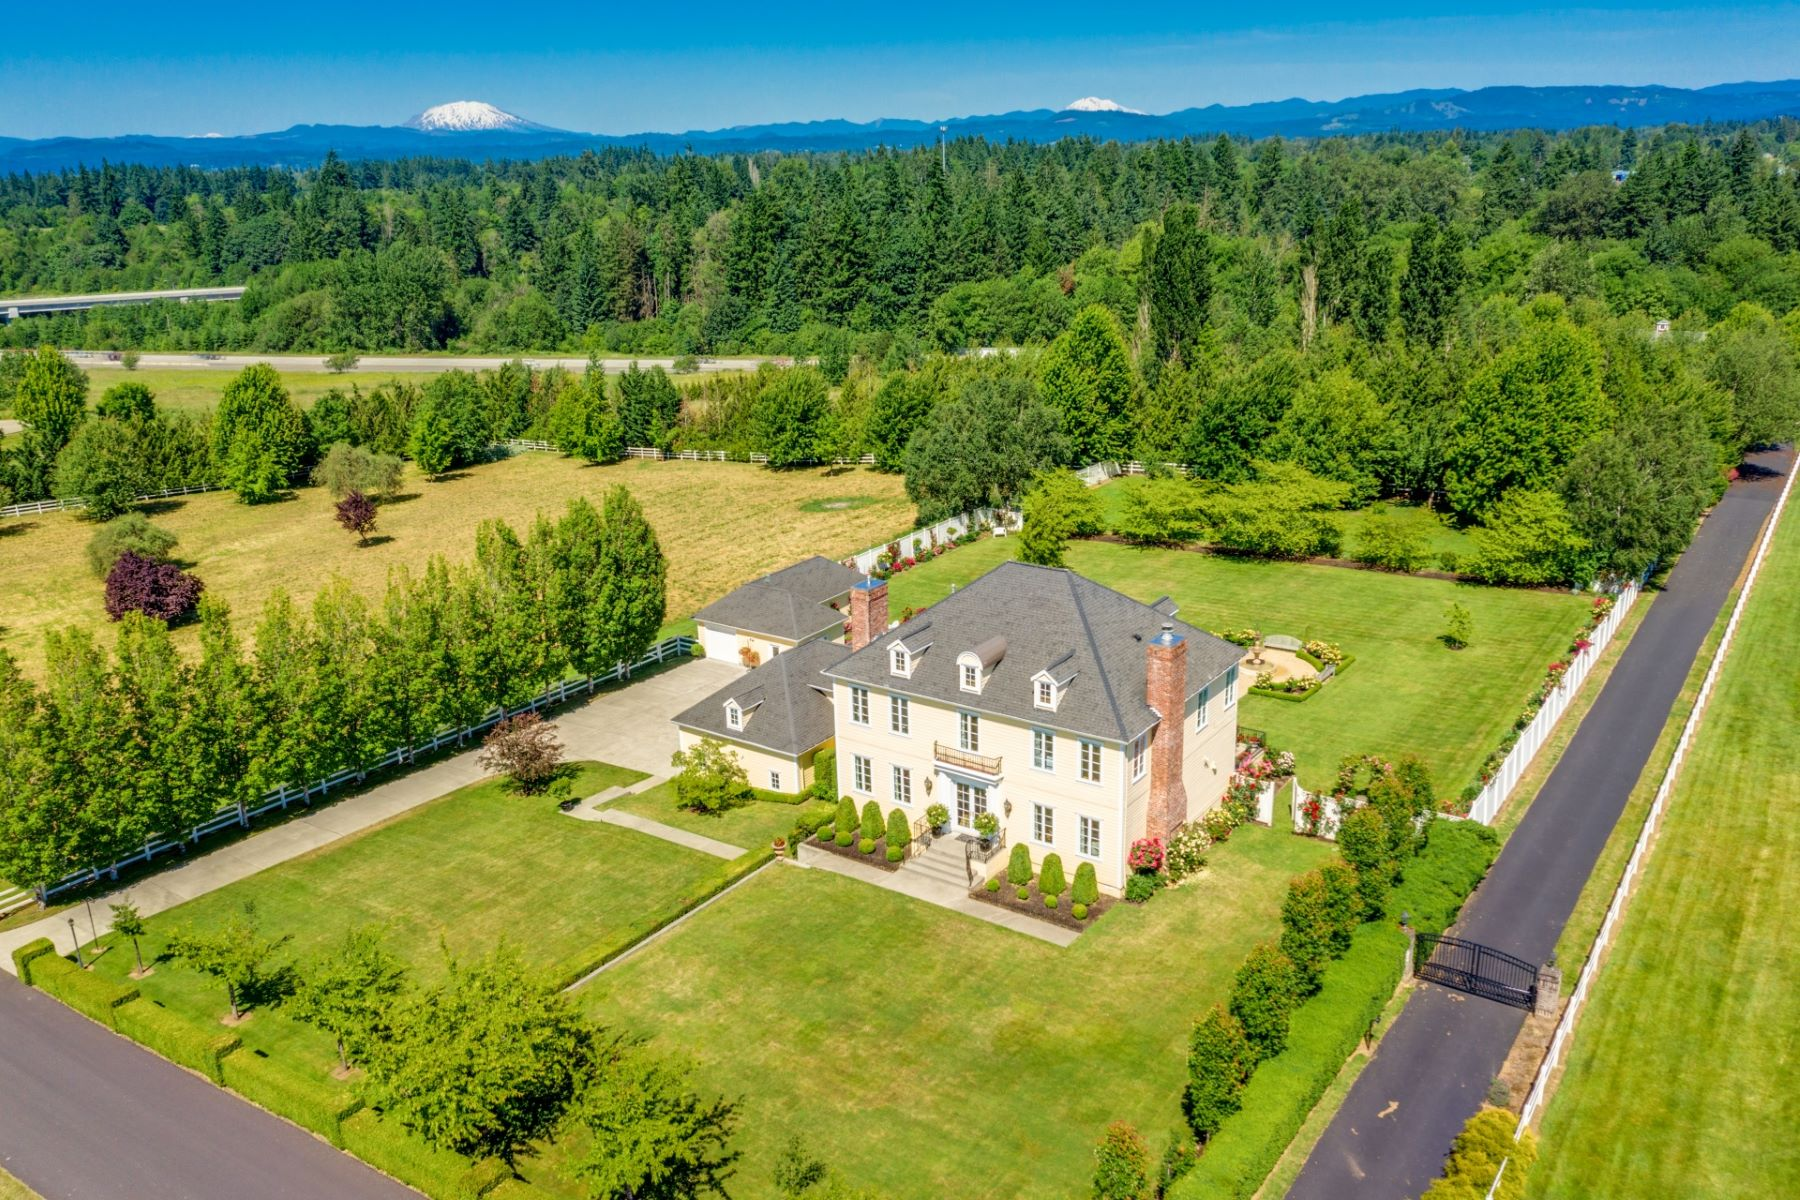 Single Family Homes for Sale at Exquisite Georgian Estate on 5 Acre 21501 5th Ave Ridgefield, Washington 98642 United States